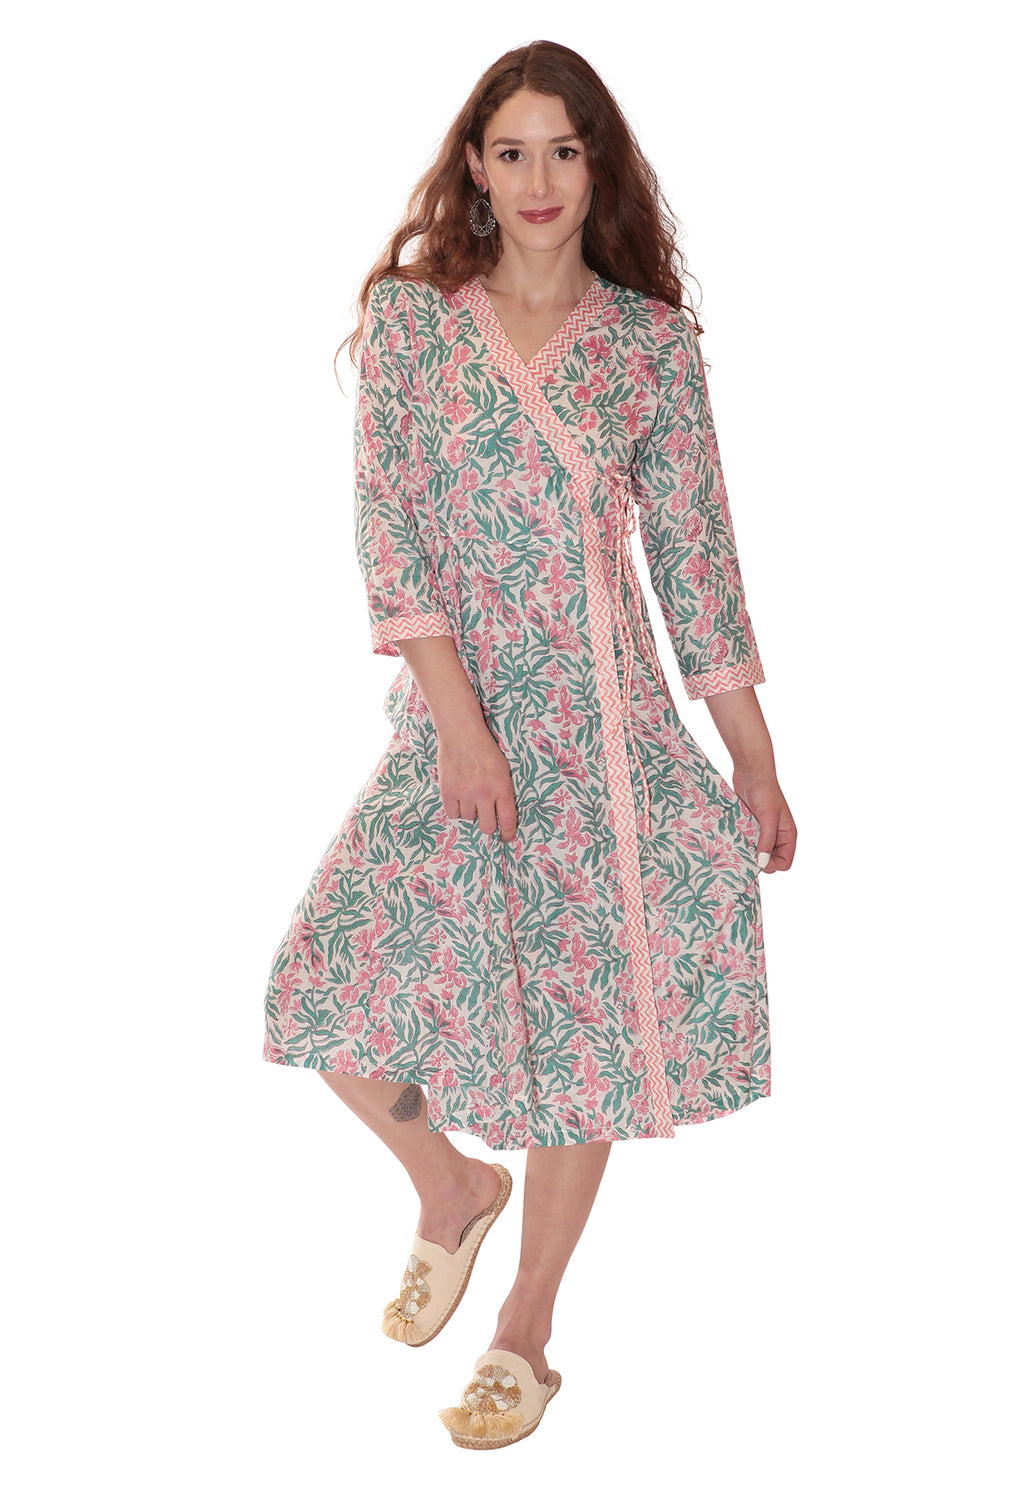 Tuleries Wrap Dress